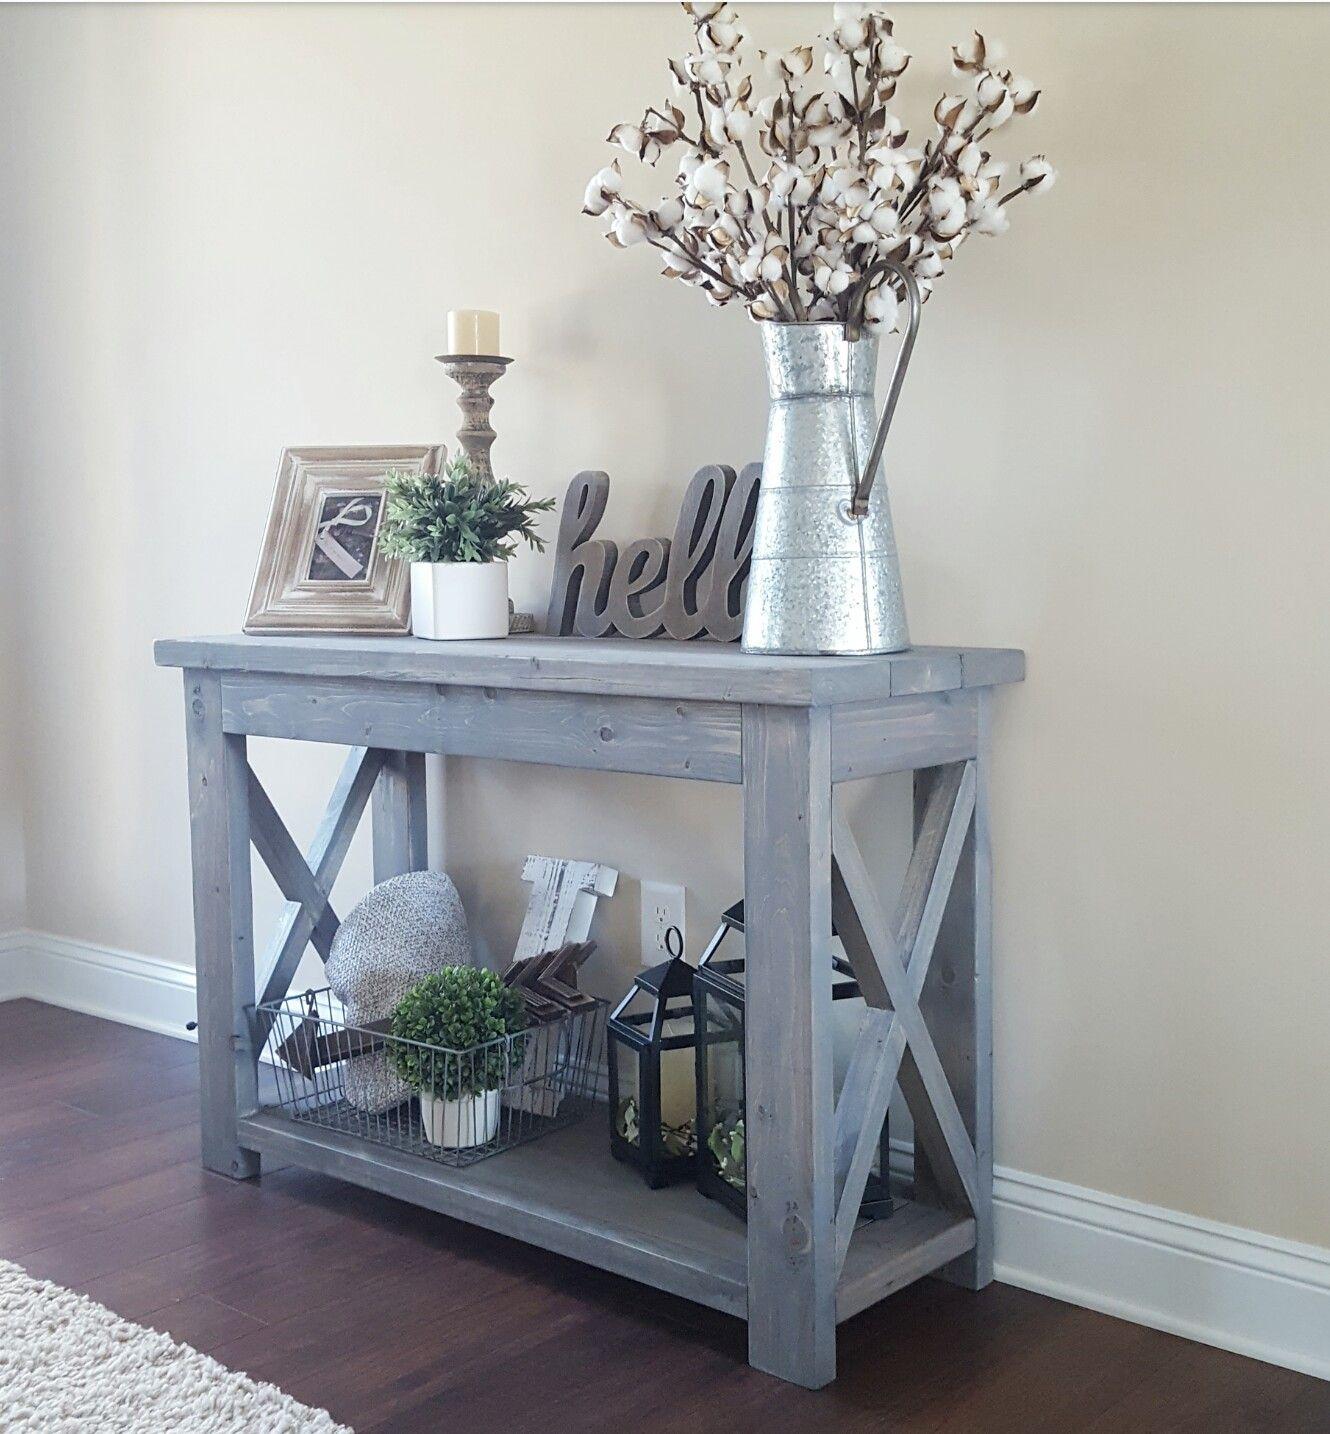 modified ana whites rustic console table and used minwax classic gray accent stain unfinished wood adirondack chairs dining room pieces farmhouse bronze wall clock coffee with